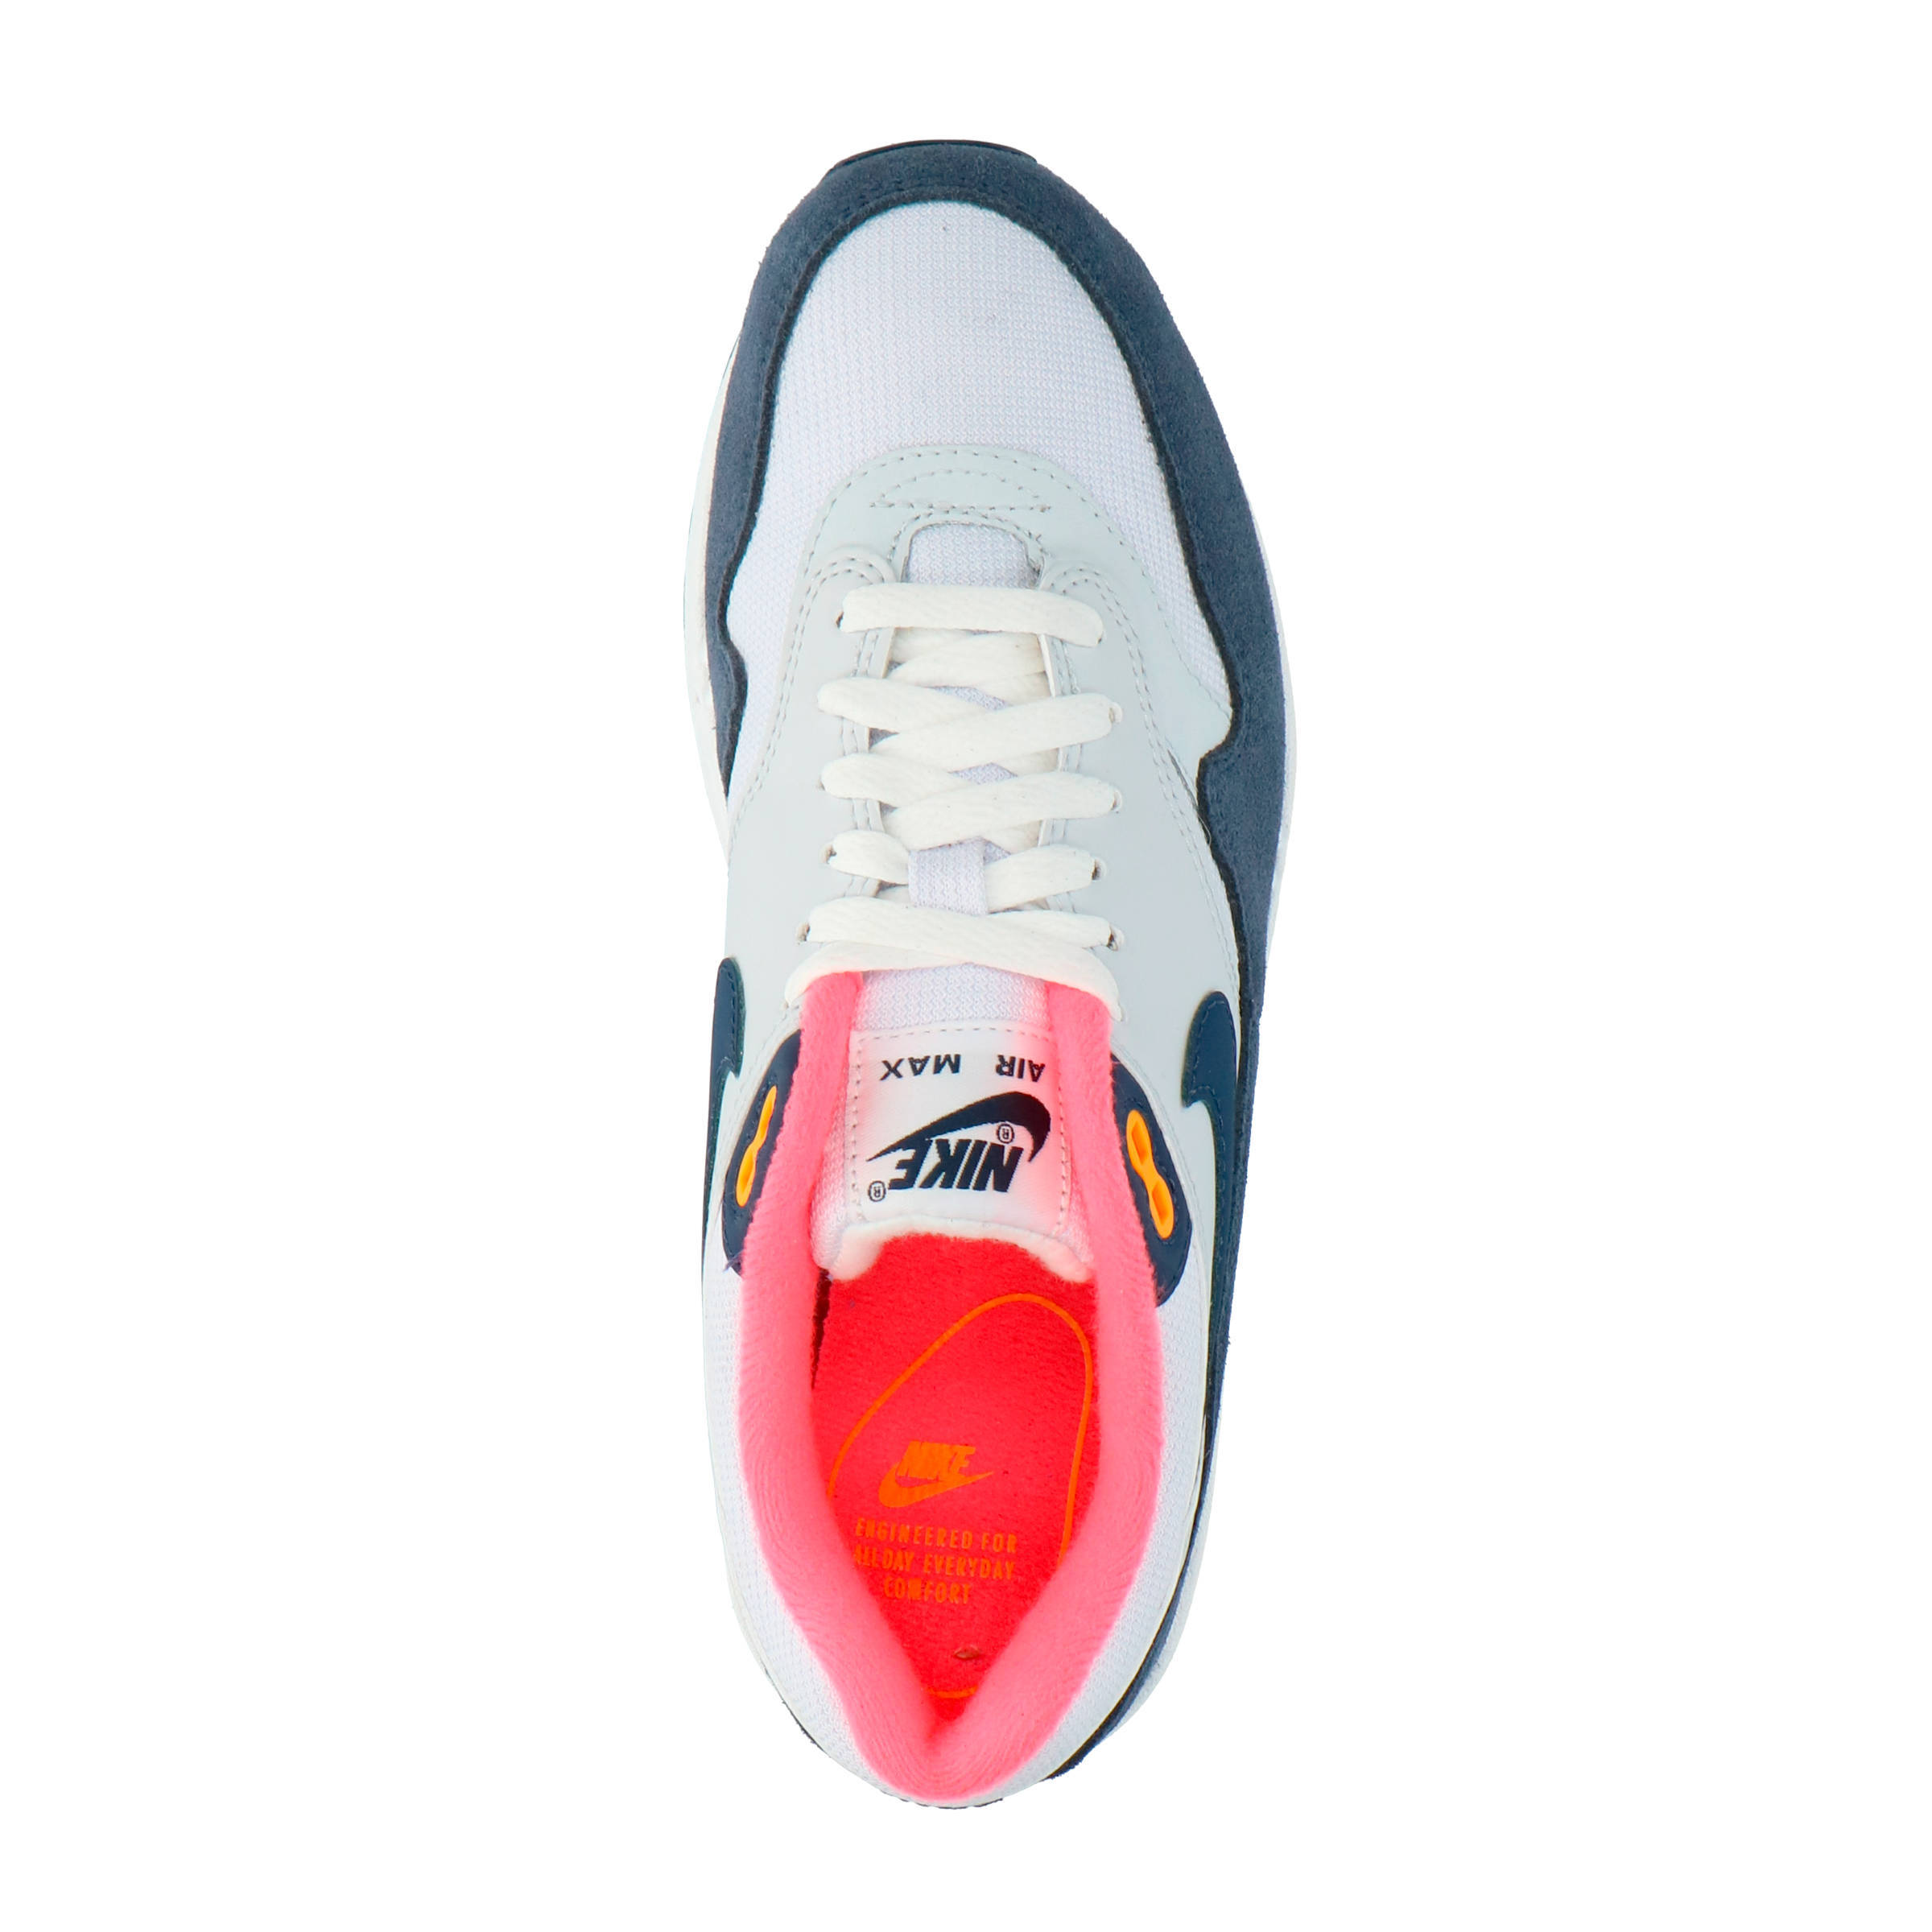 Max Nike Air 1 Wit Sneakers roze blauw D2HIW9E